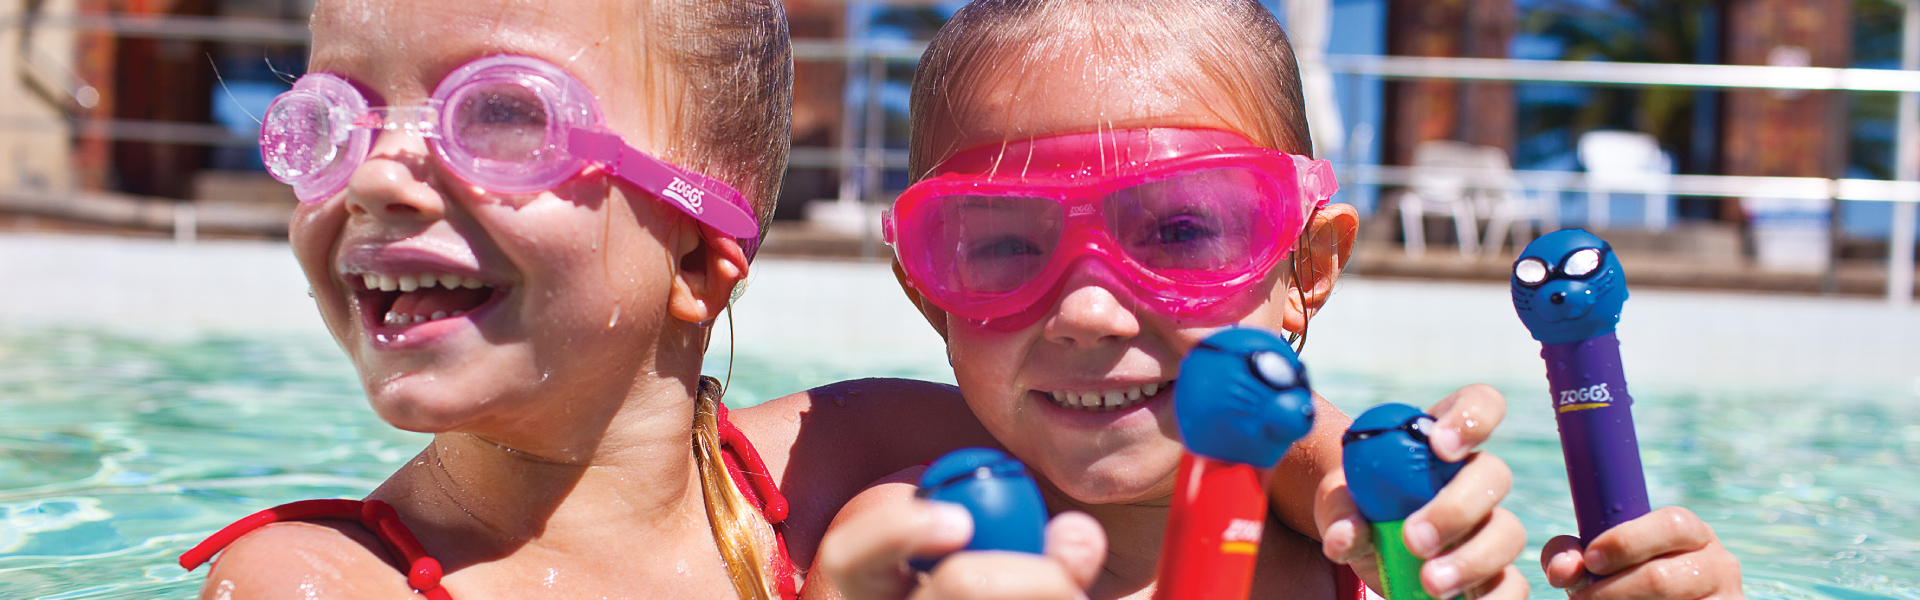 Swimming Pool Games to Keep the Kids Entertained on Holiday